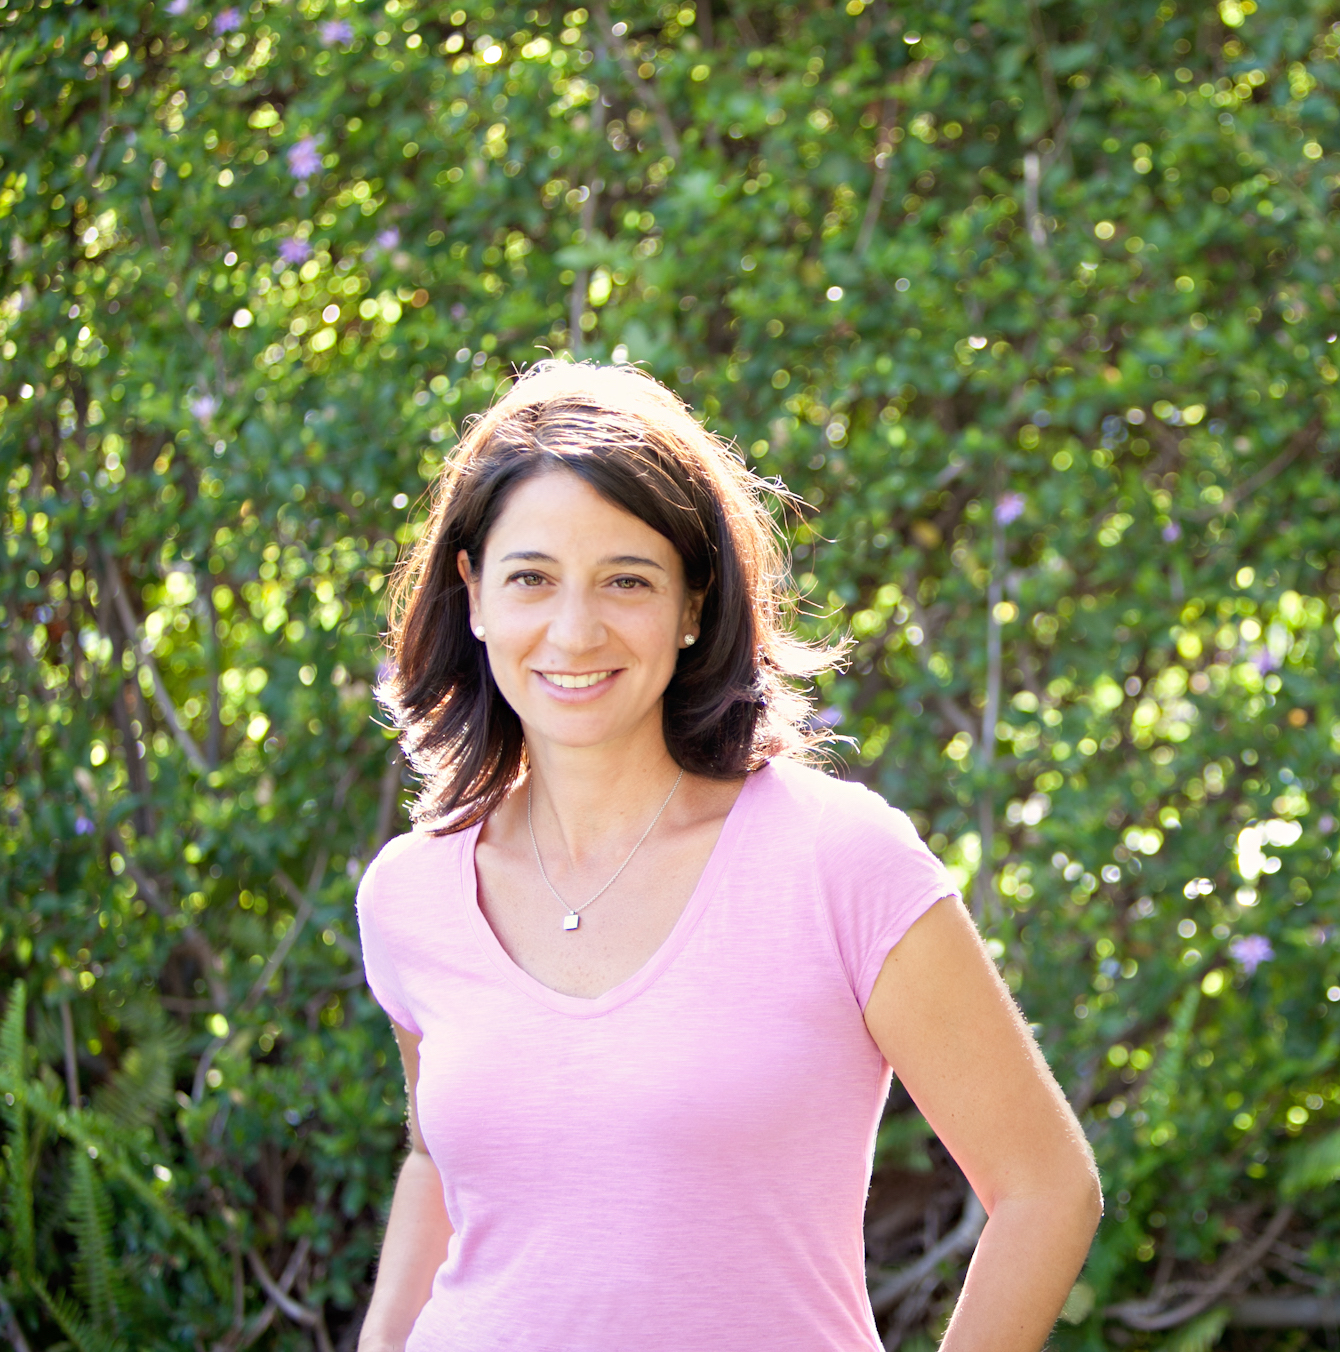 Danny Bonvissuto    Writer Extraordinnaire   Danny Bonvissuto loves words, writing for a living, independent bookstores, chips, salsa, queso, jeans and tank tops.  Once a year she travels to St. George Island, Florida, a remote and underpopulated, un-touristy area, to step off the hamster wheel of life and eat raw oysters by the dozen.